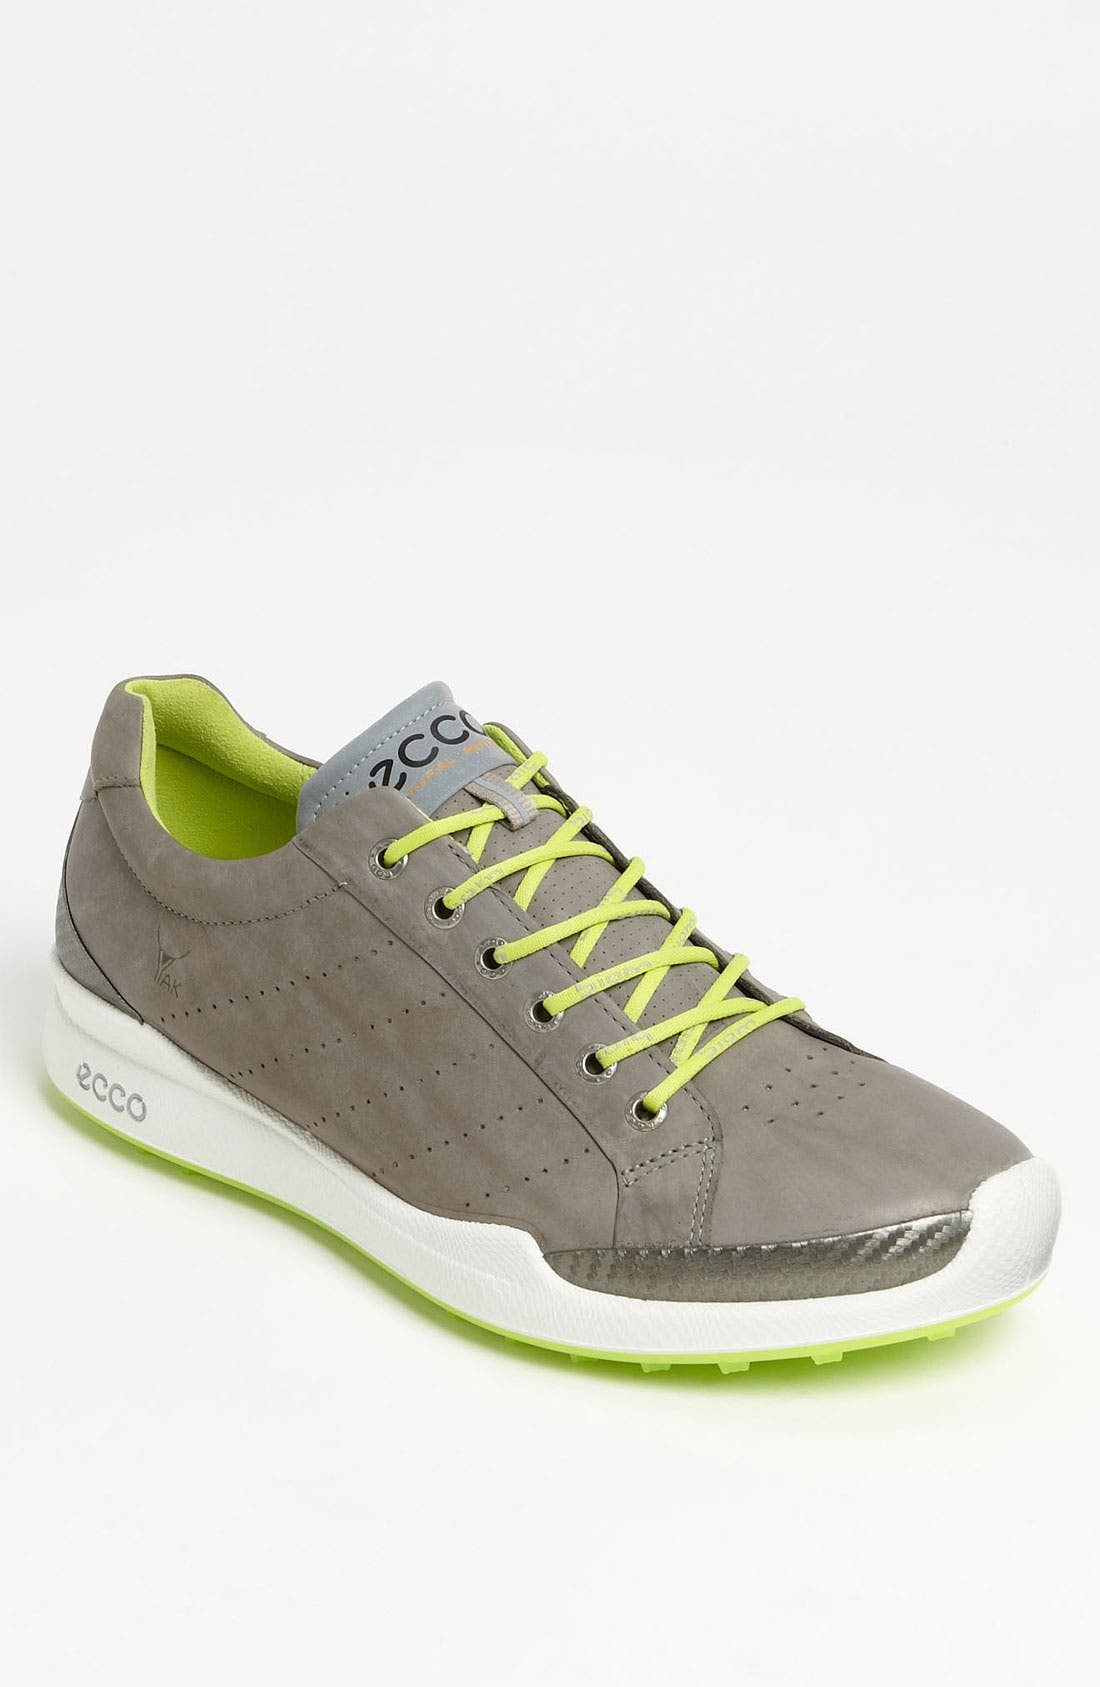 Alternate Image 1 Selected - ECCO 'Biom Hybrid' Golf Shoe   (Men)